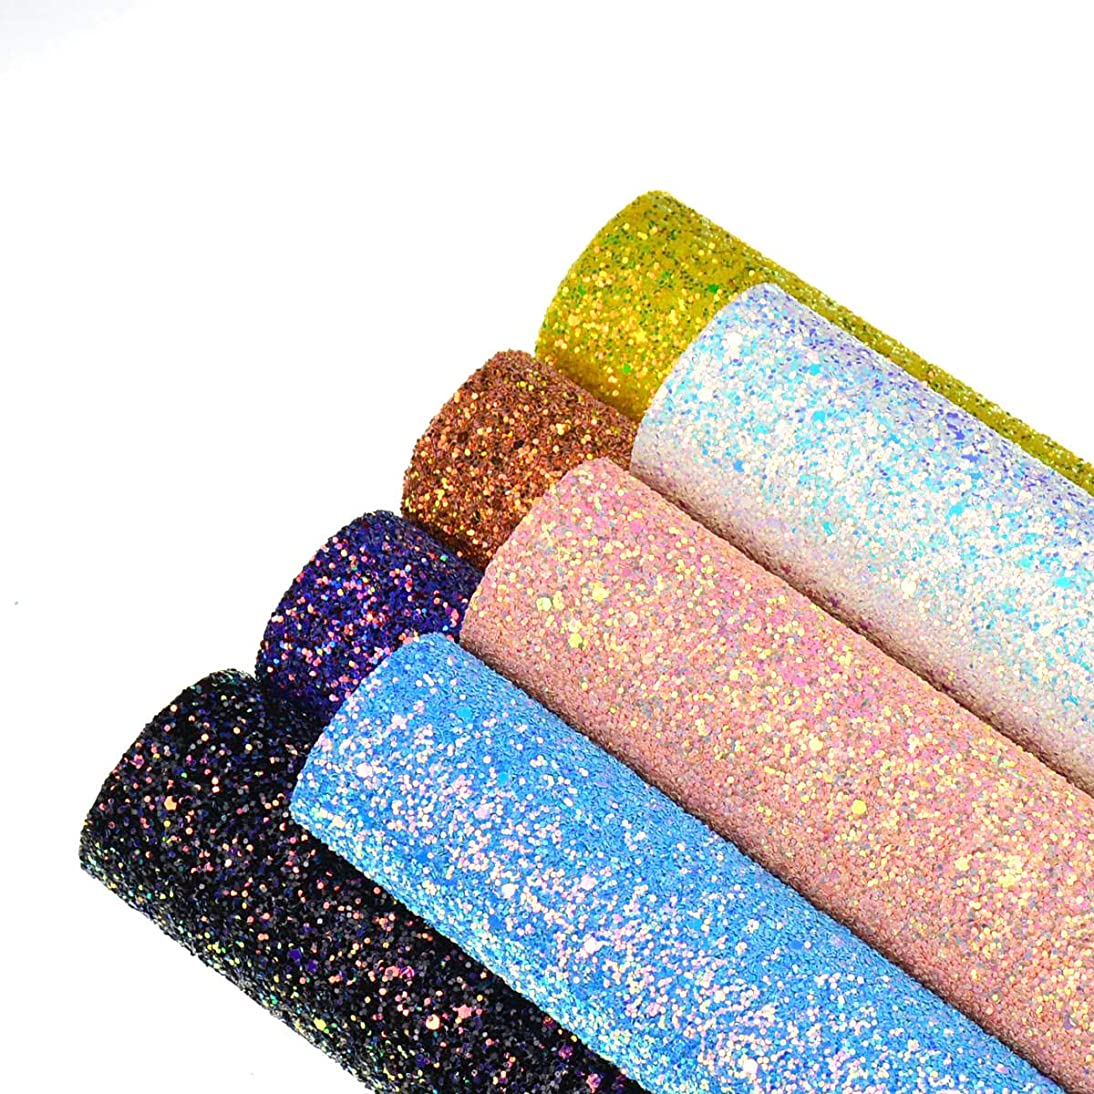 Faux Leather Chunky Glitter Canvas Sheets- 7 Pieces Assorted Colors A4 Size(8 X 12 Inch)Shiny Glitter Fabric Sheets for Bows, Earrings, Hair Accessories Making(7 Colors, Each Color One Sheet)